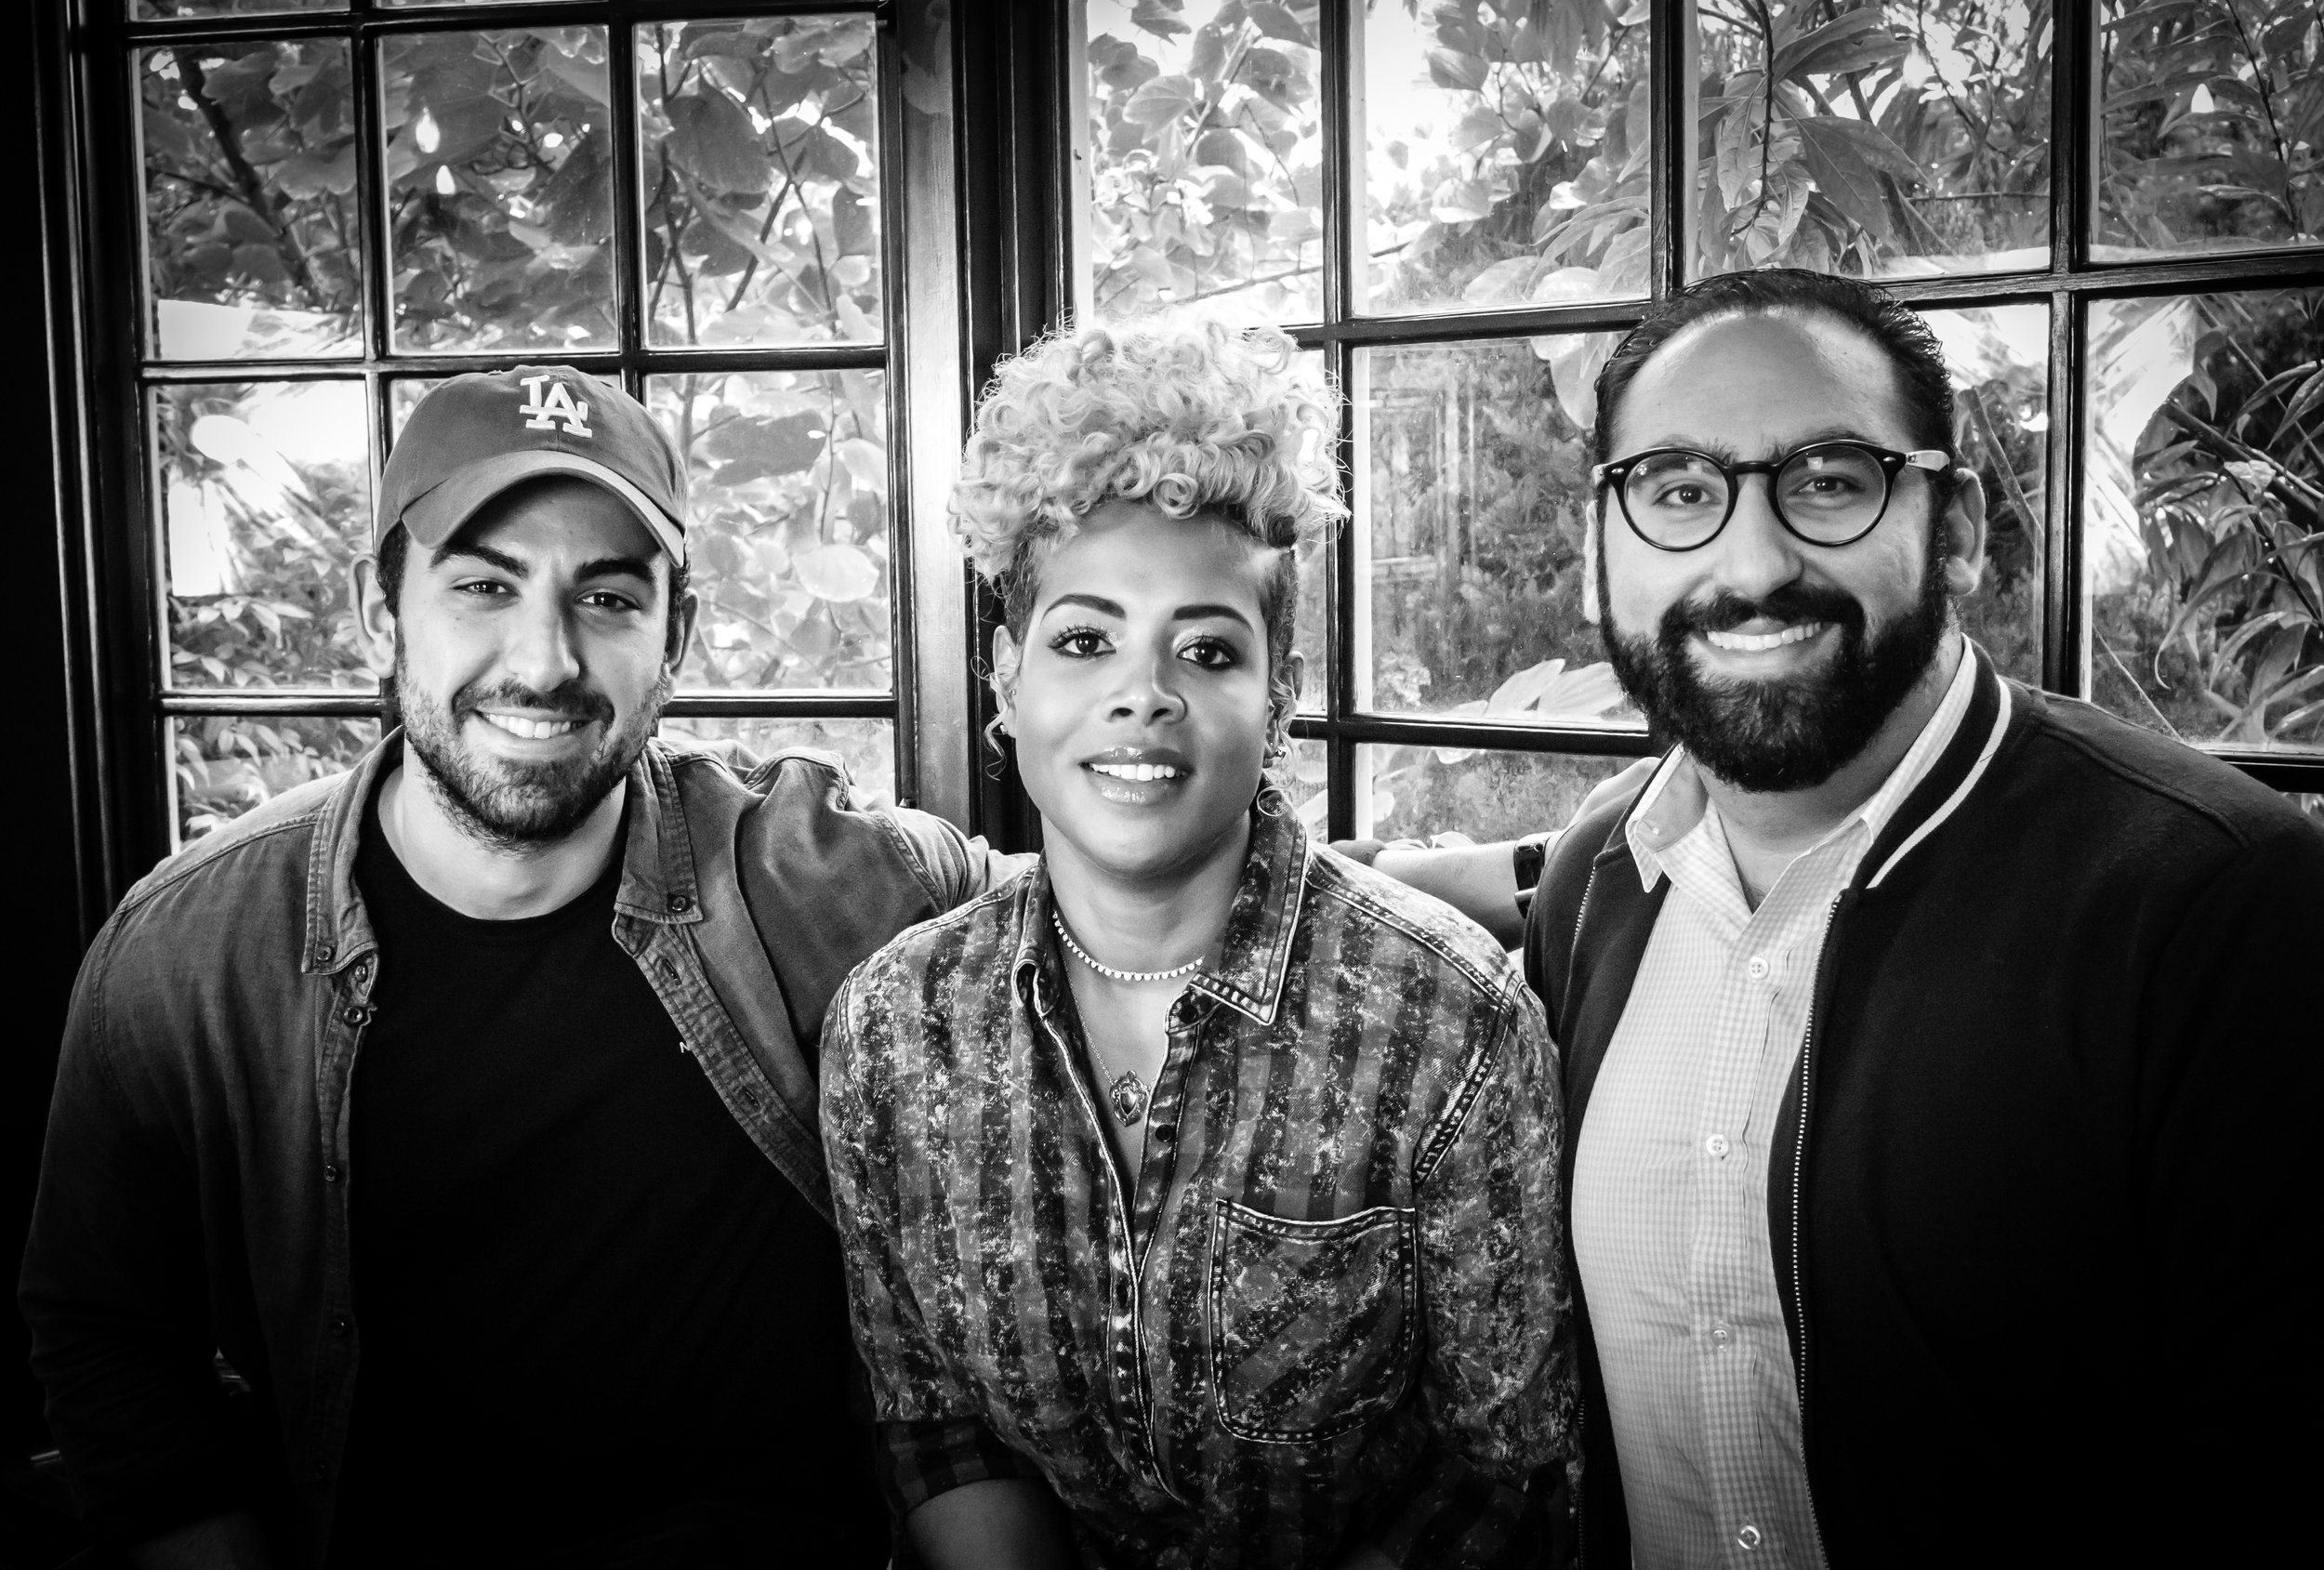 Kelis Rogers, Kelis, Bounty & Full, The Founder Hour, Podcast